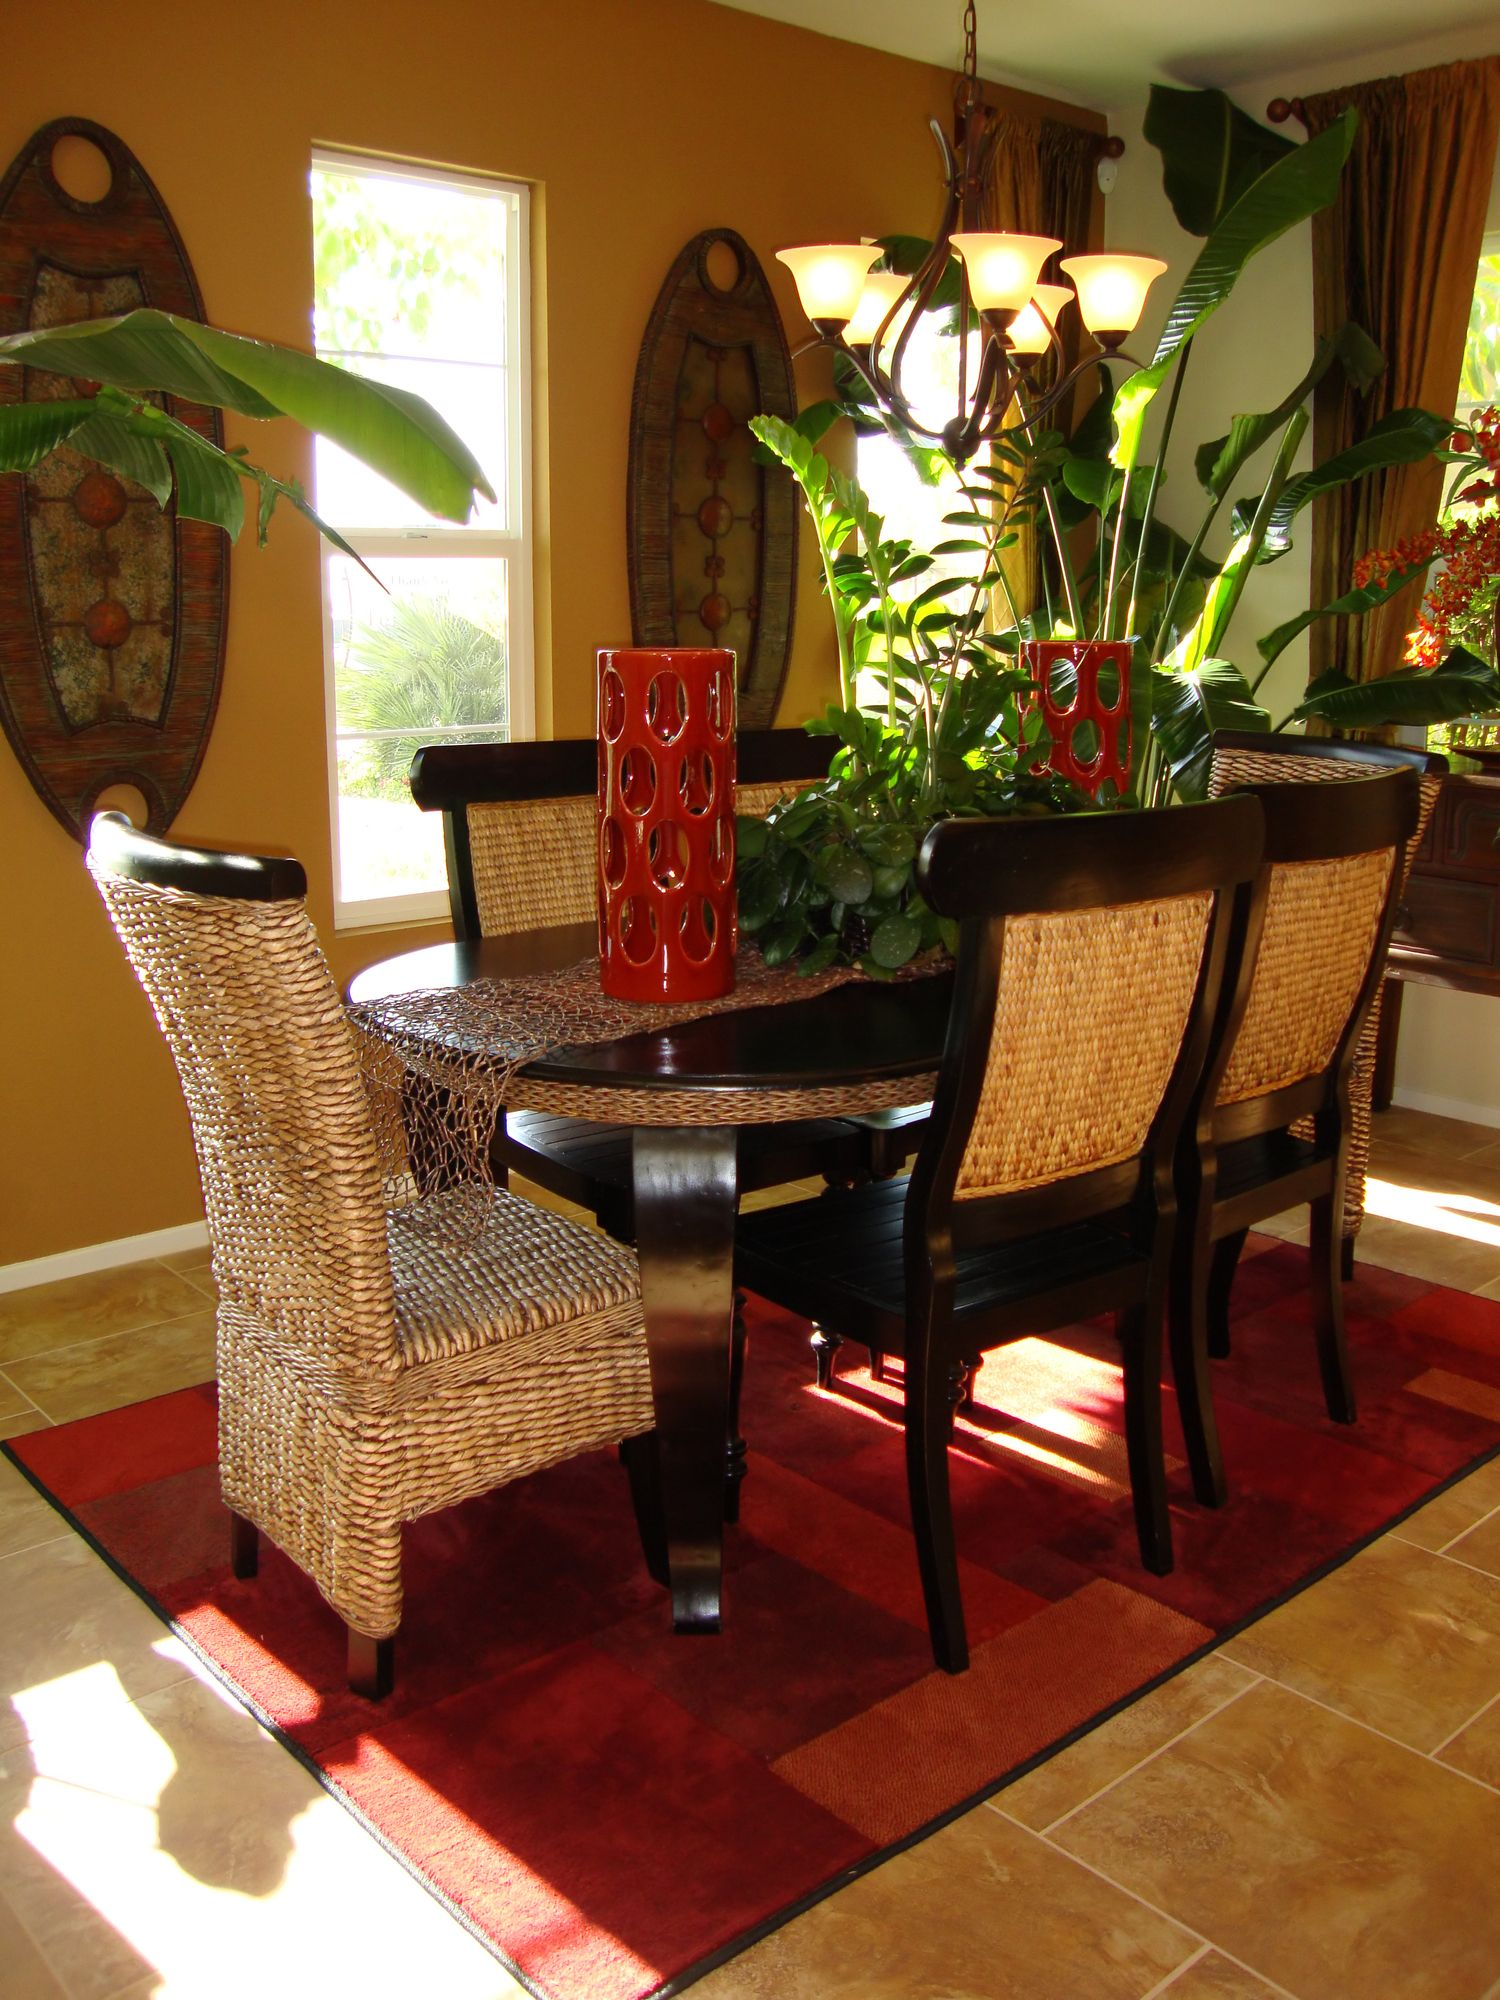 Designs Of Rooms: Achieve A Tropical Dining Room By